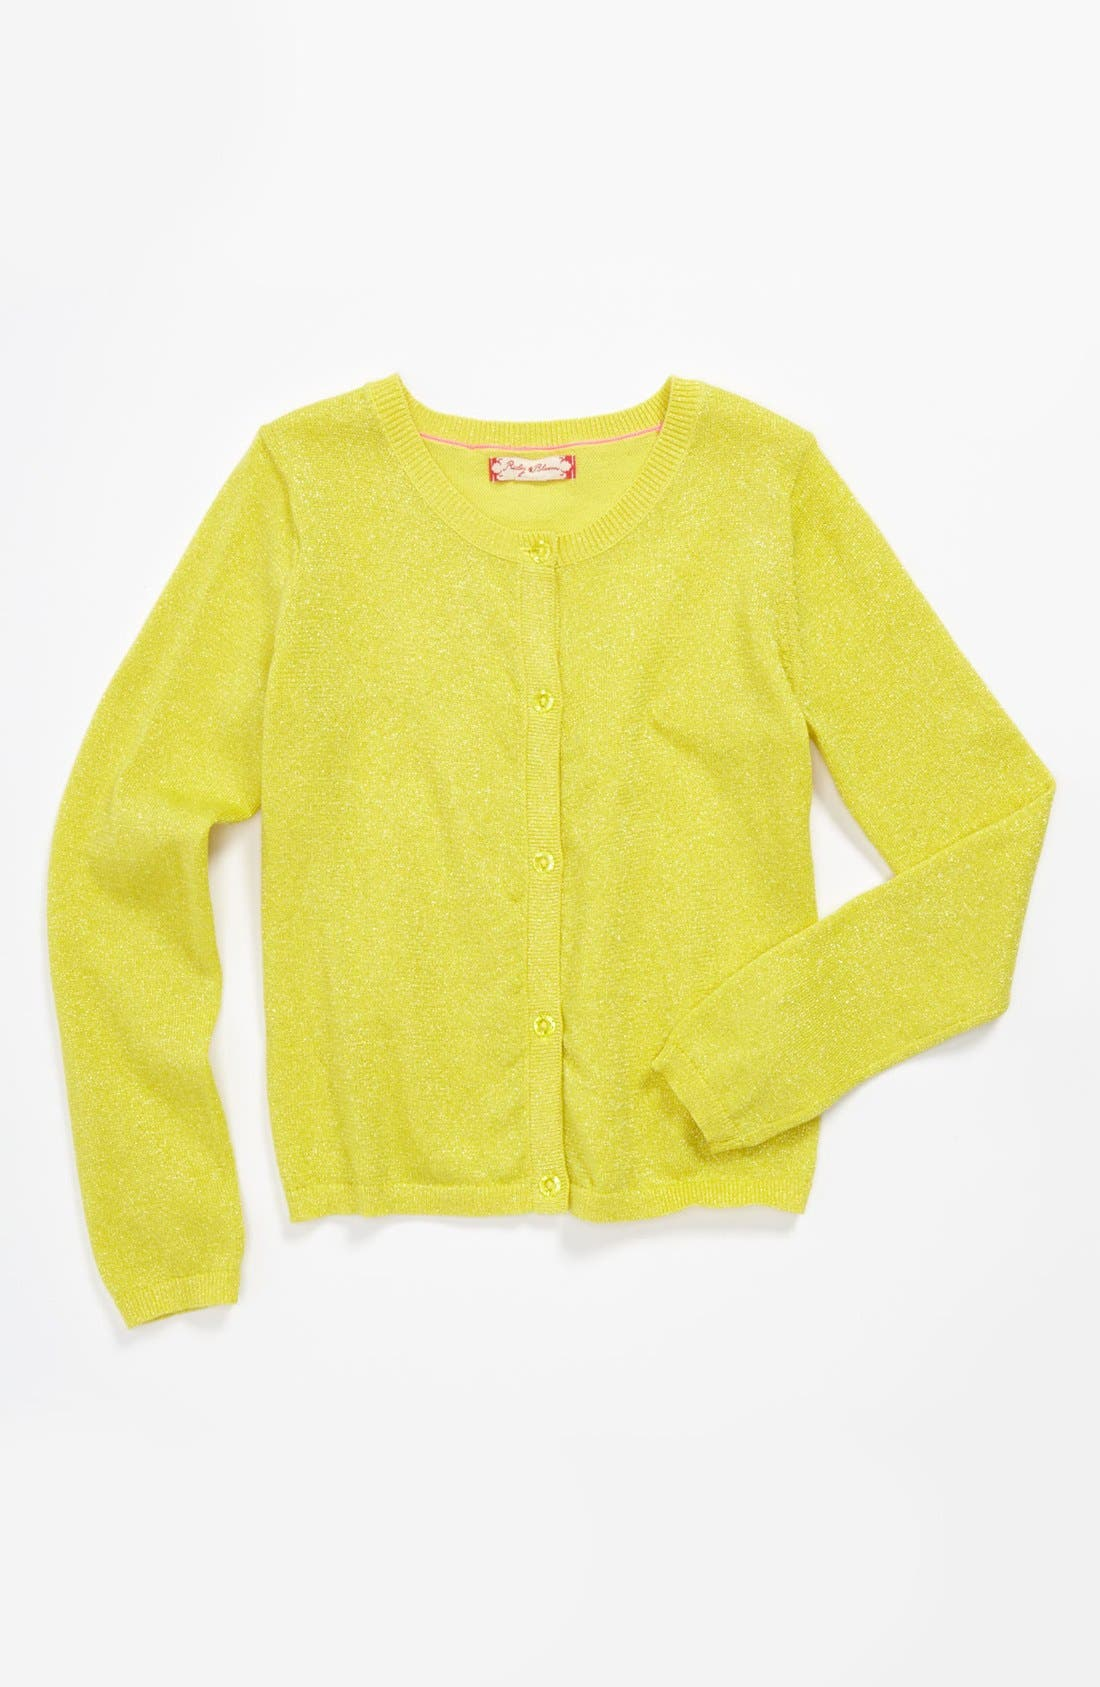 Main Image - Ruby & Bloom 'Sparkle' Cardigan (Big Girls)